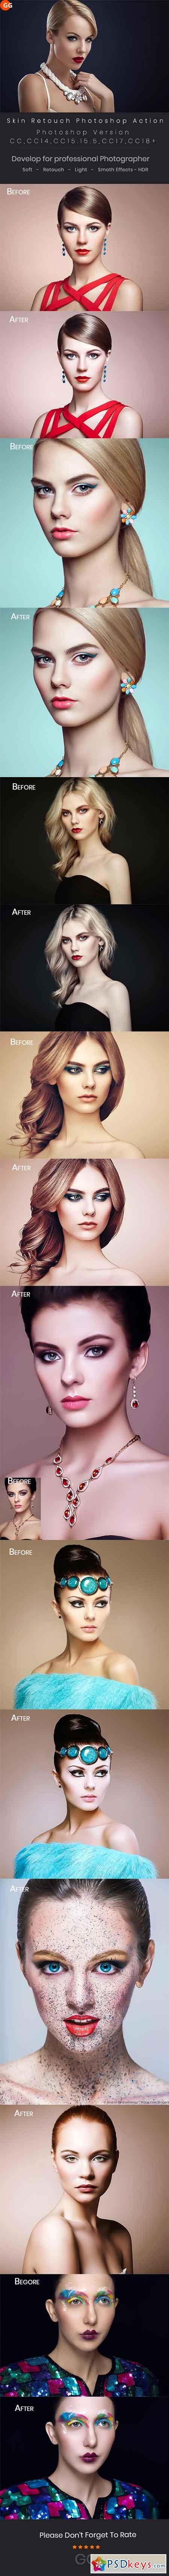 10 Skin Retouch Photoshop Action 22290778